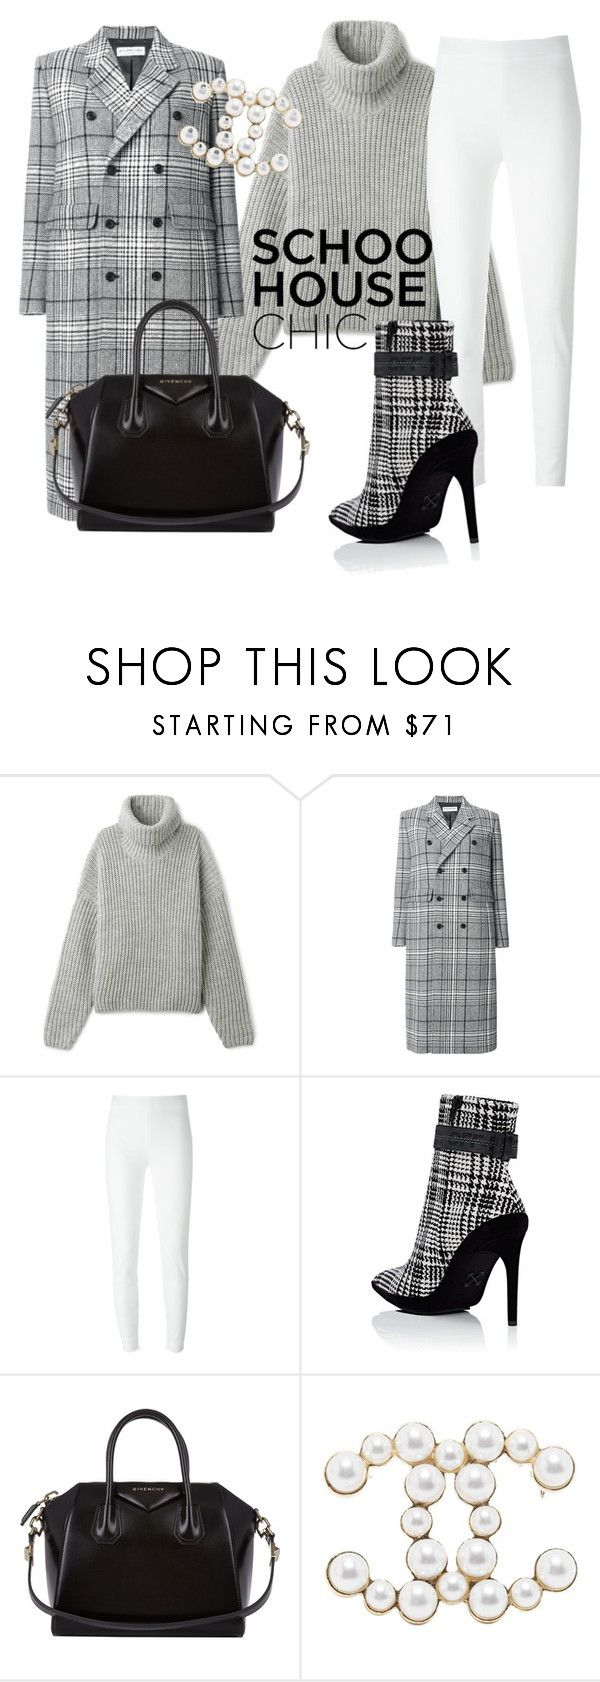 """Work hard"" by sneakeraddicted ❤ liked on Polyvore featuring Balenciaga, Moschino, Off-White, Givenchy and Chanel"